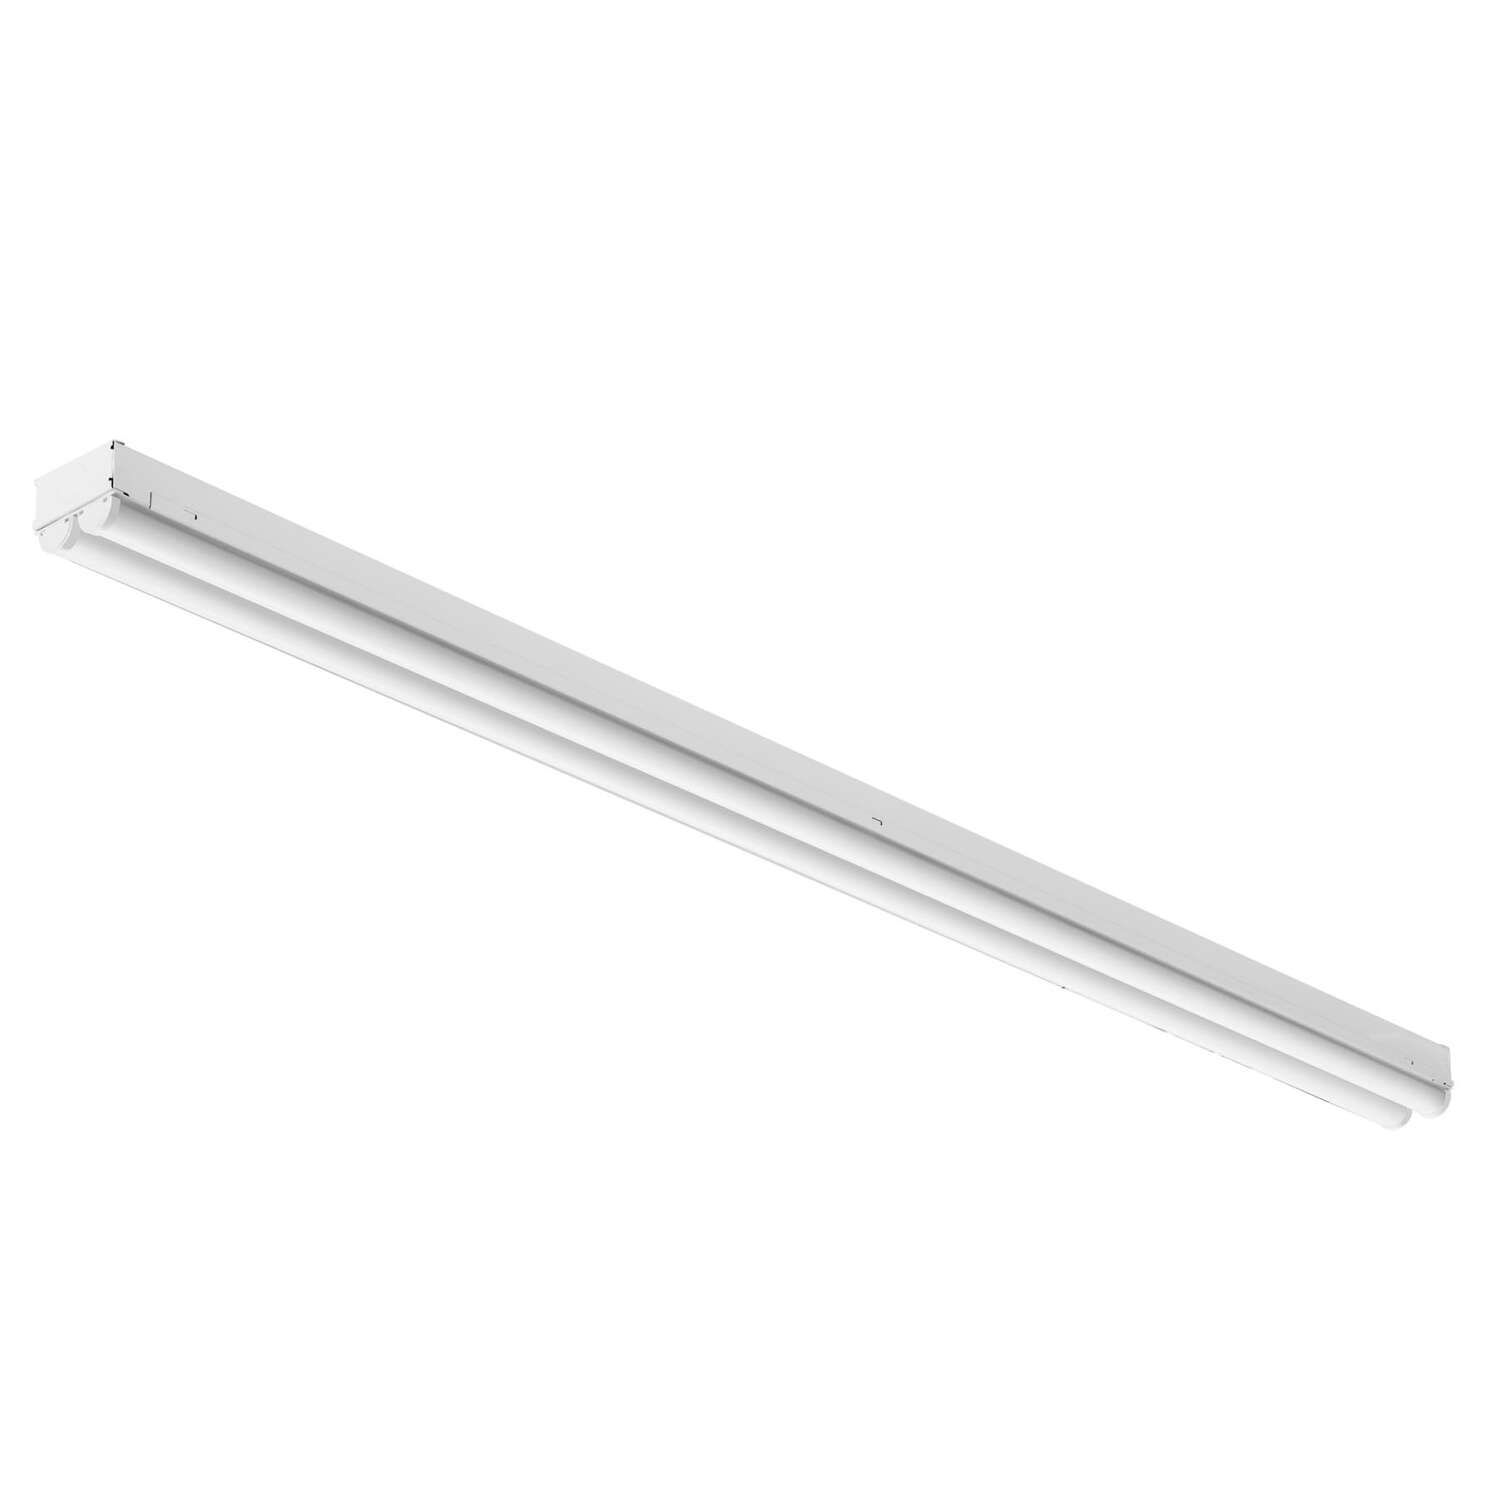 Lithonia Lighting  96 in. L White  Hardwired  LED  Strip Light  8200 lumens